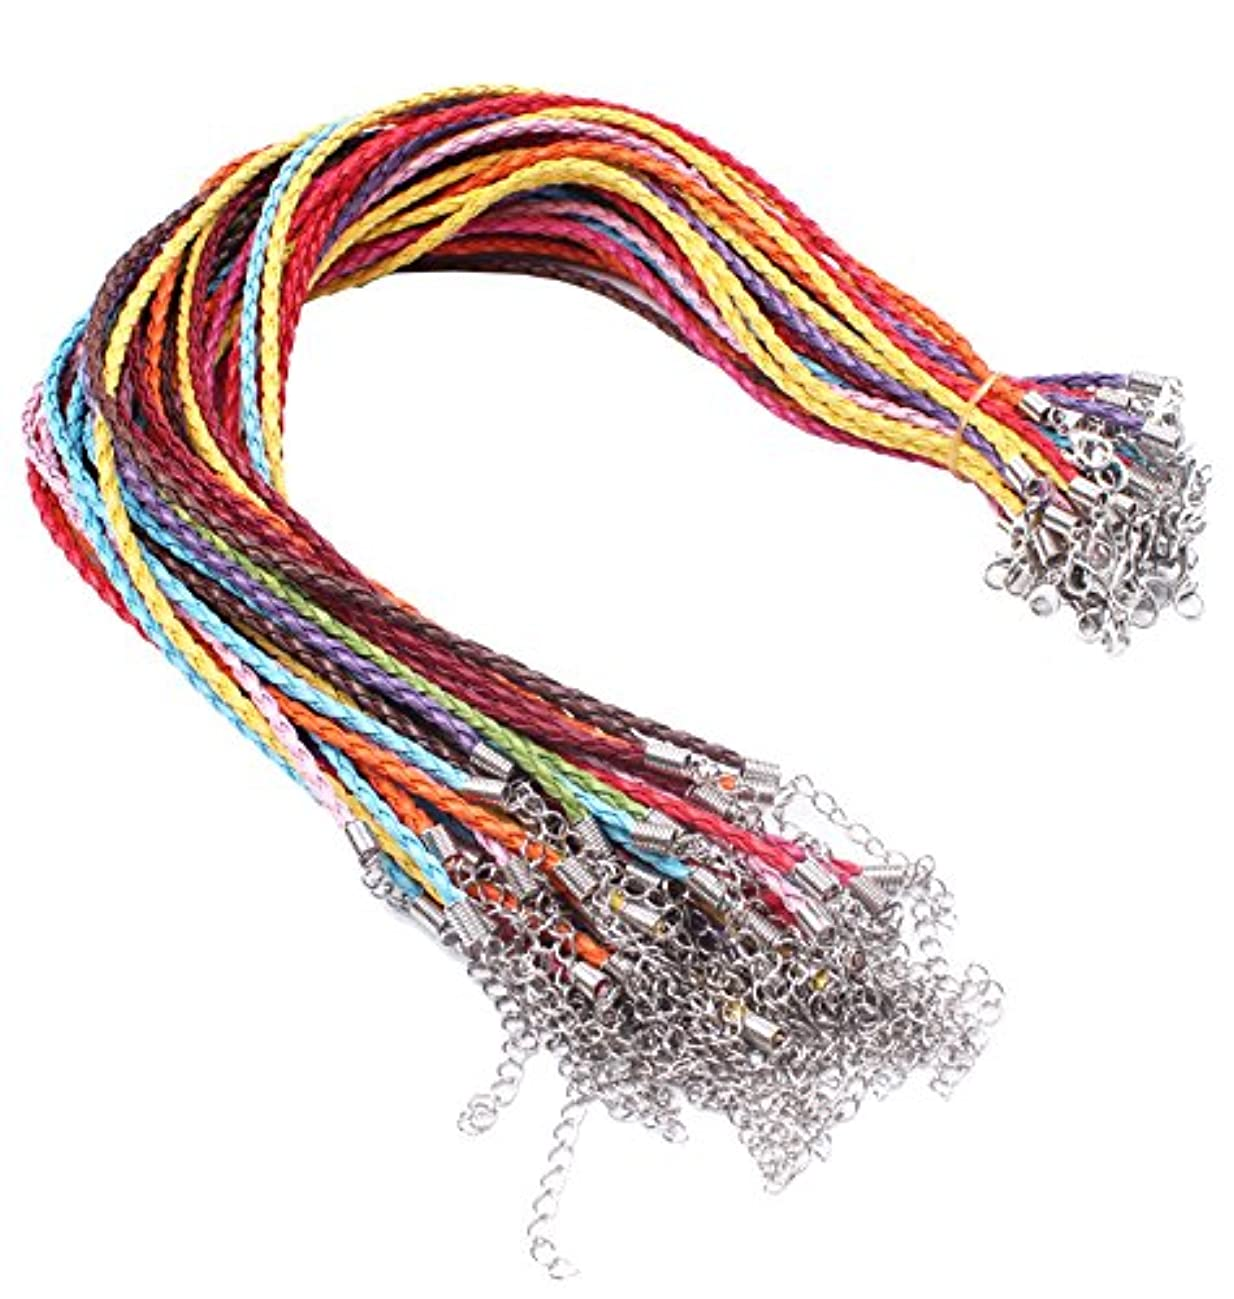 BIHRTC Pack of 50 Mixed Color DIY Jewelry Making Leather Plaited Necklaces Cords Ropes with Lobster Claw Clasp Extended Chain for Charms Jewelry Making